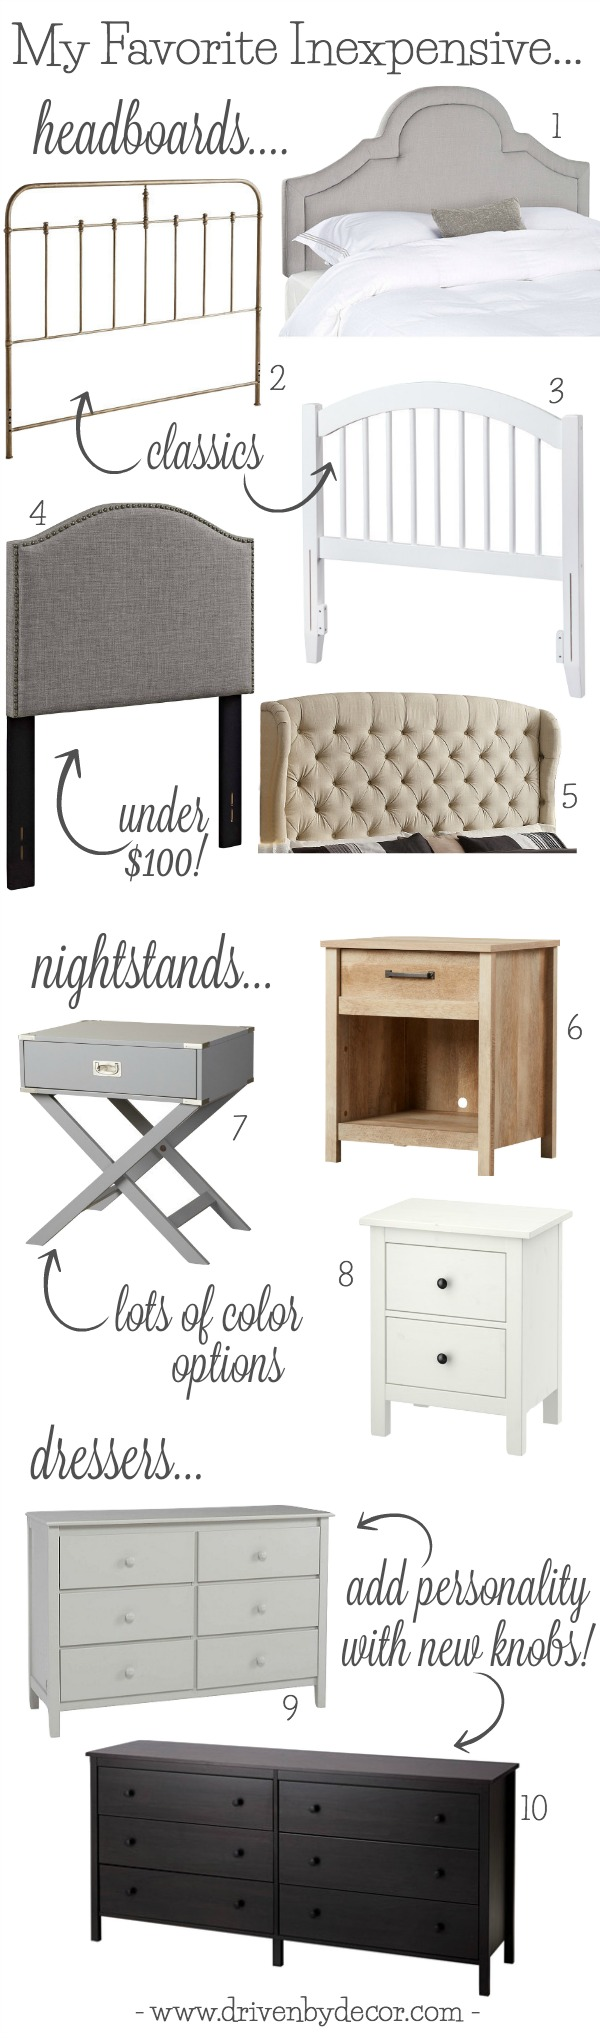 My Favorite Inexpensive Bedroom Furniture Pieces   From Headboards To  Nightstands To Dressers!